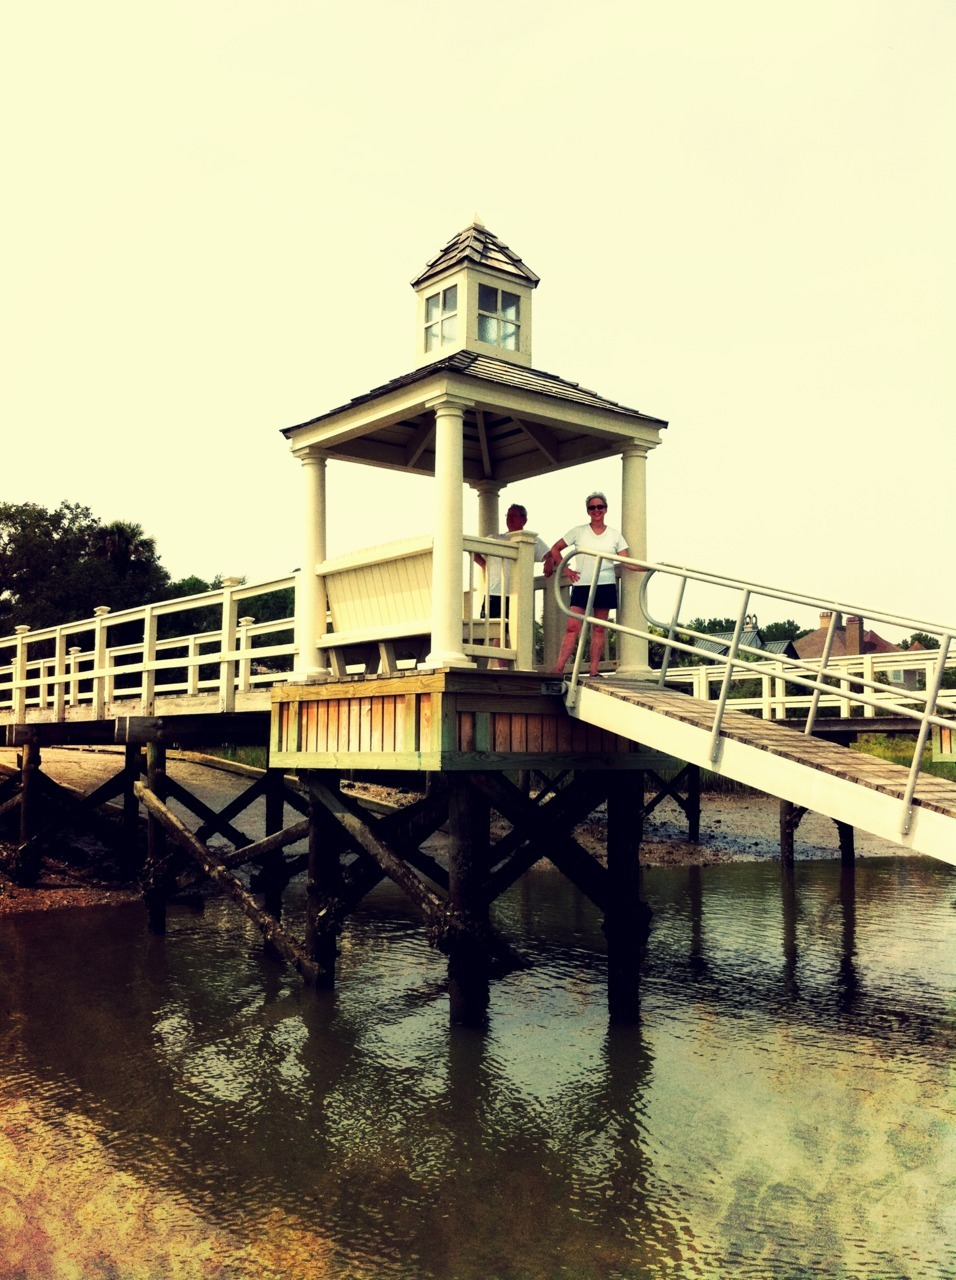 Dock on the Kiawah River. South Carolina.